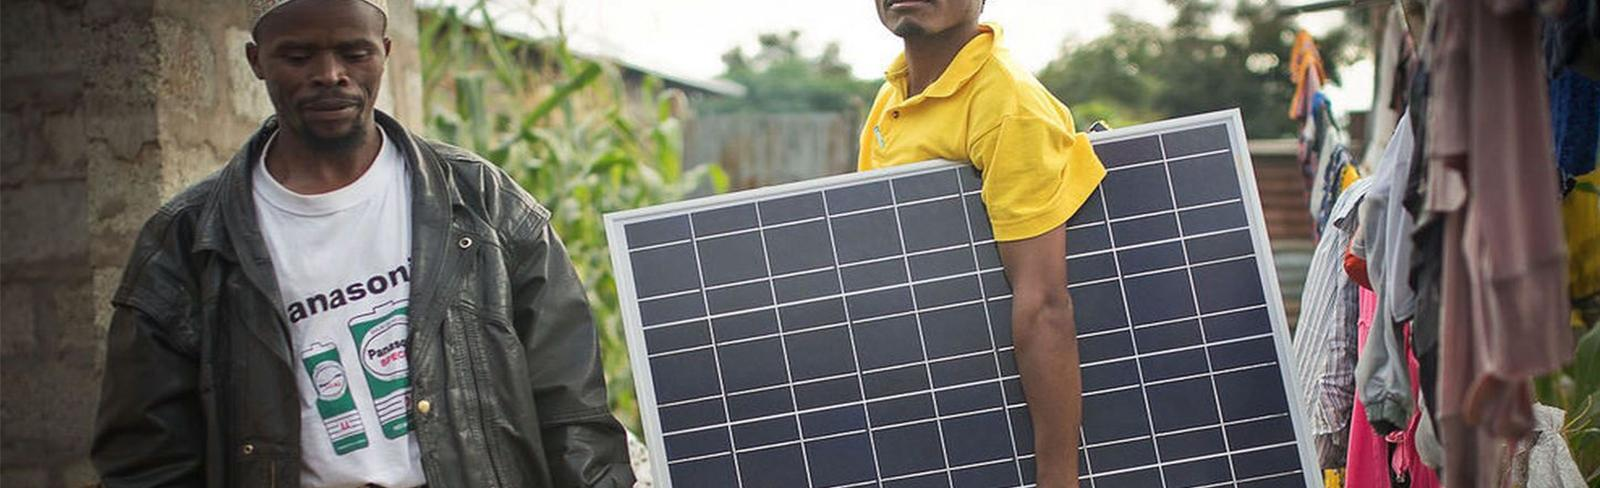 From Lighting Africa to Lighting Global | Creating Off-Grid Solar Markets to Light up the World